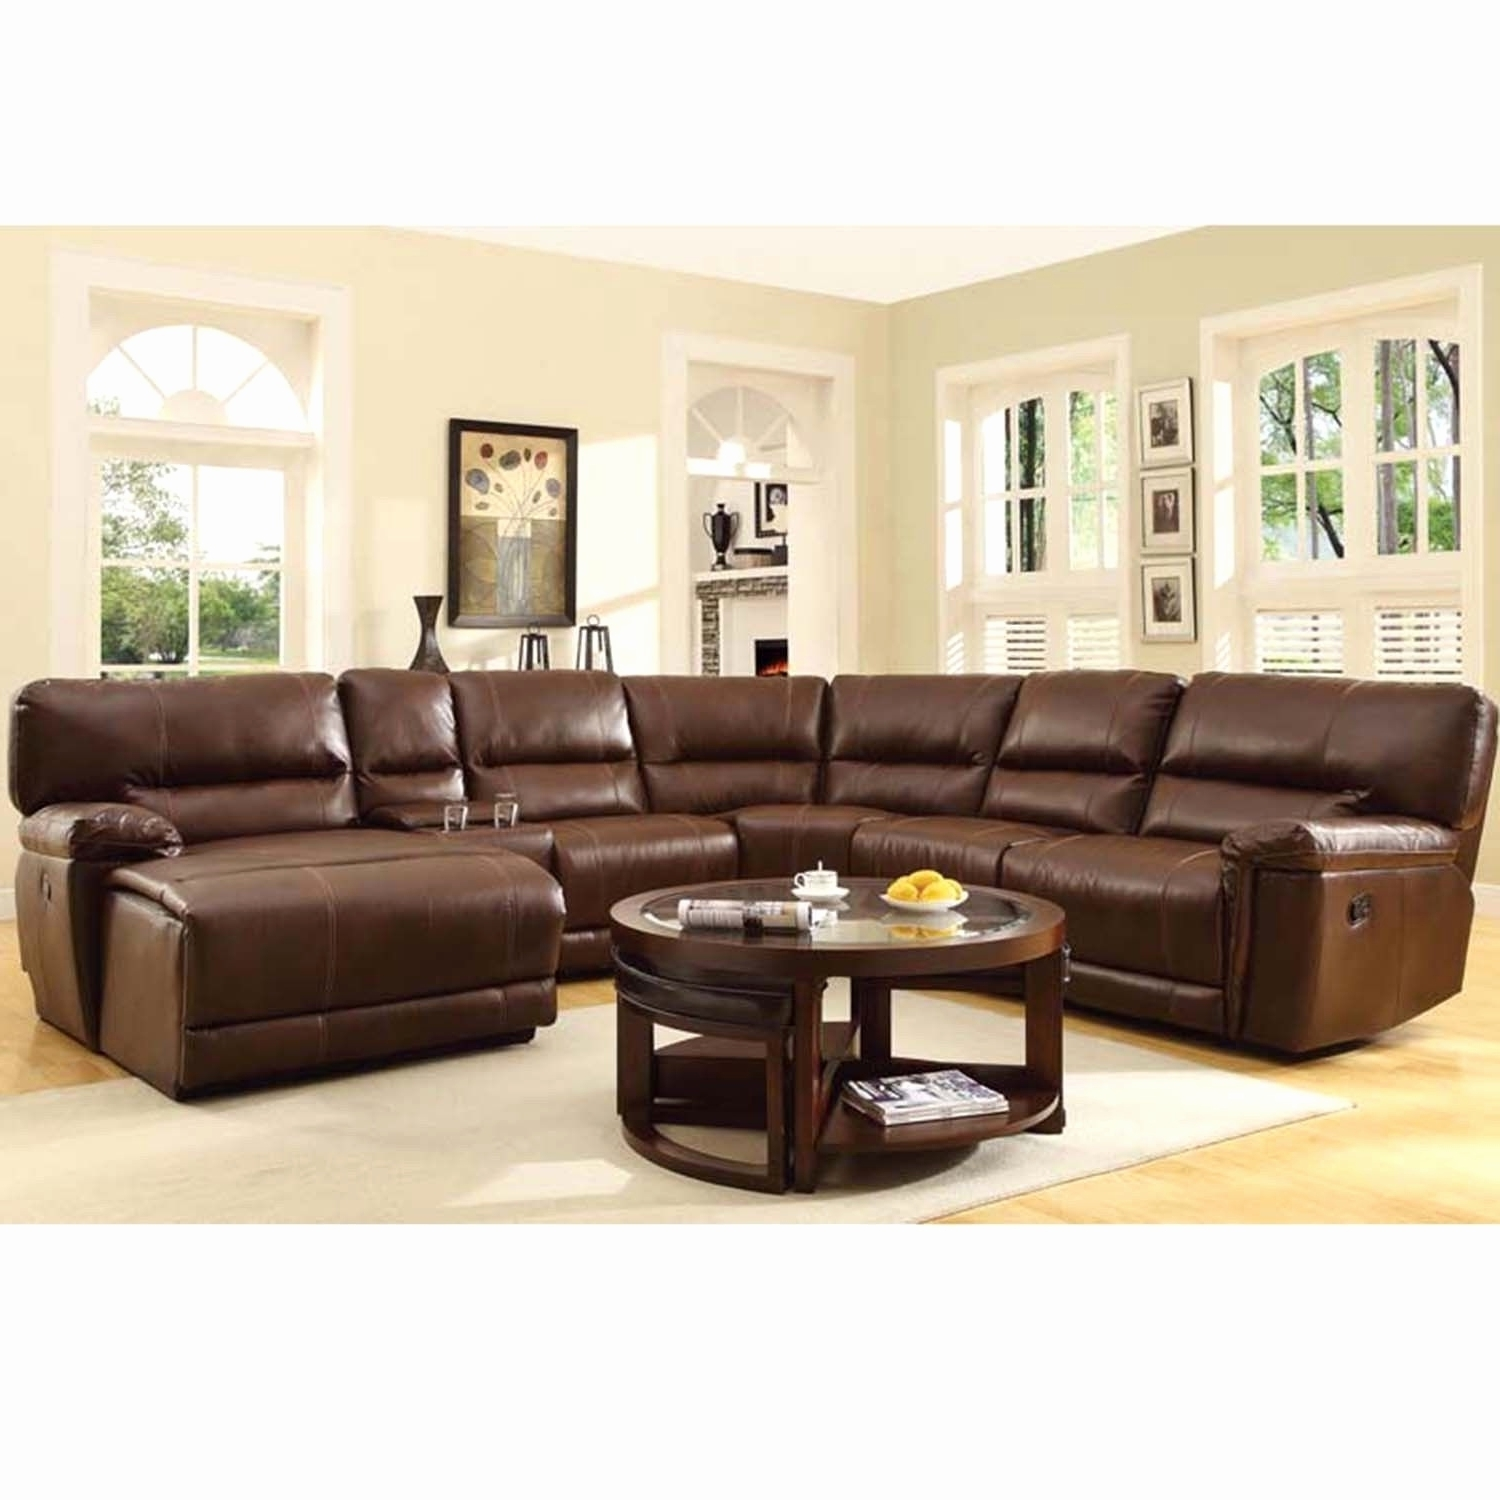 Sofas : Gray Couch Cheap Sectional Sofas Sectionals For Small Pertaining To Well Known Small Sectional Sofas For Small Spaces (View 14 of 15)